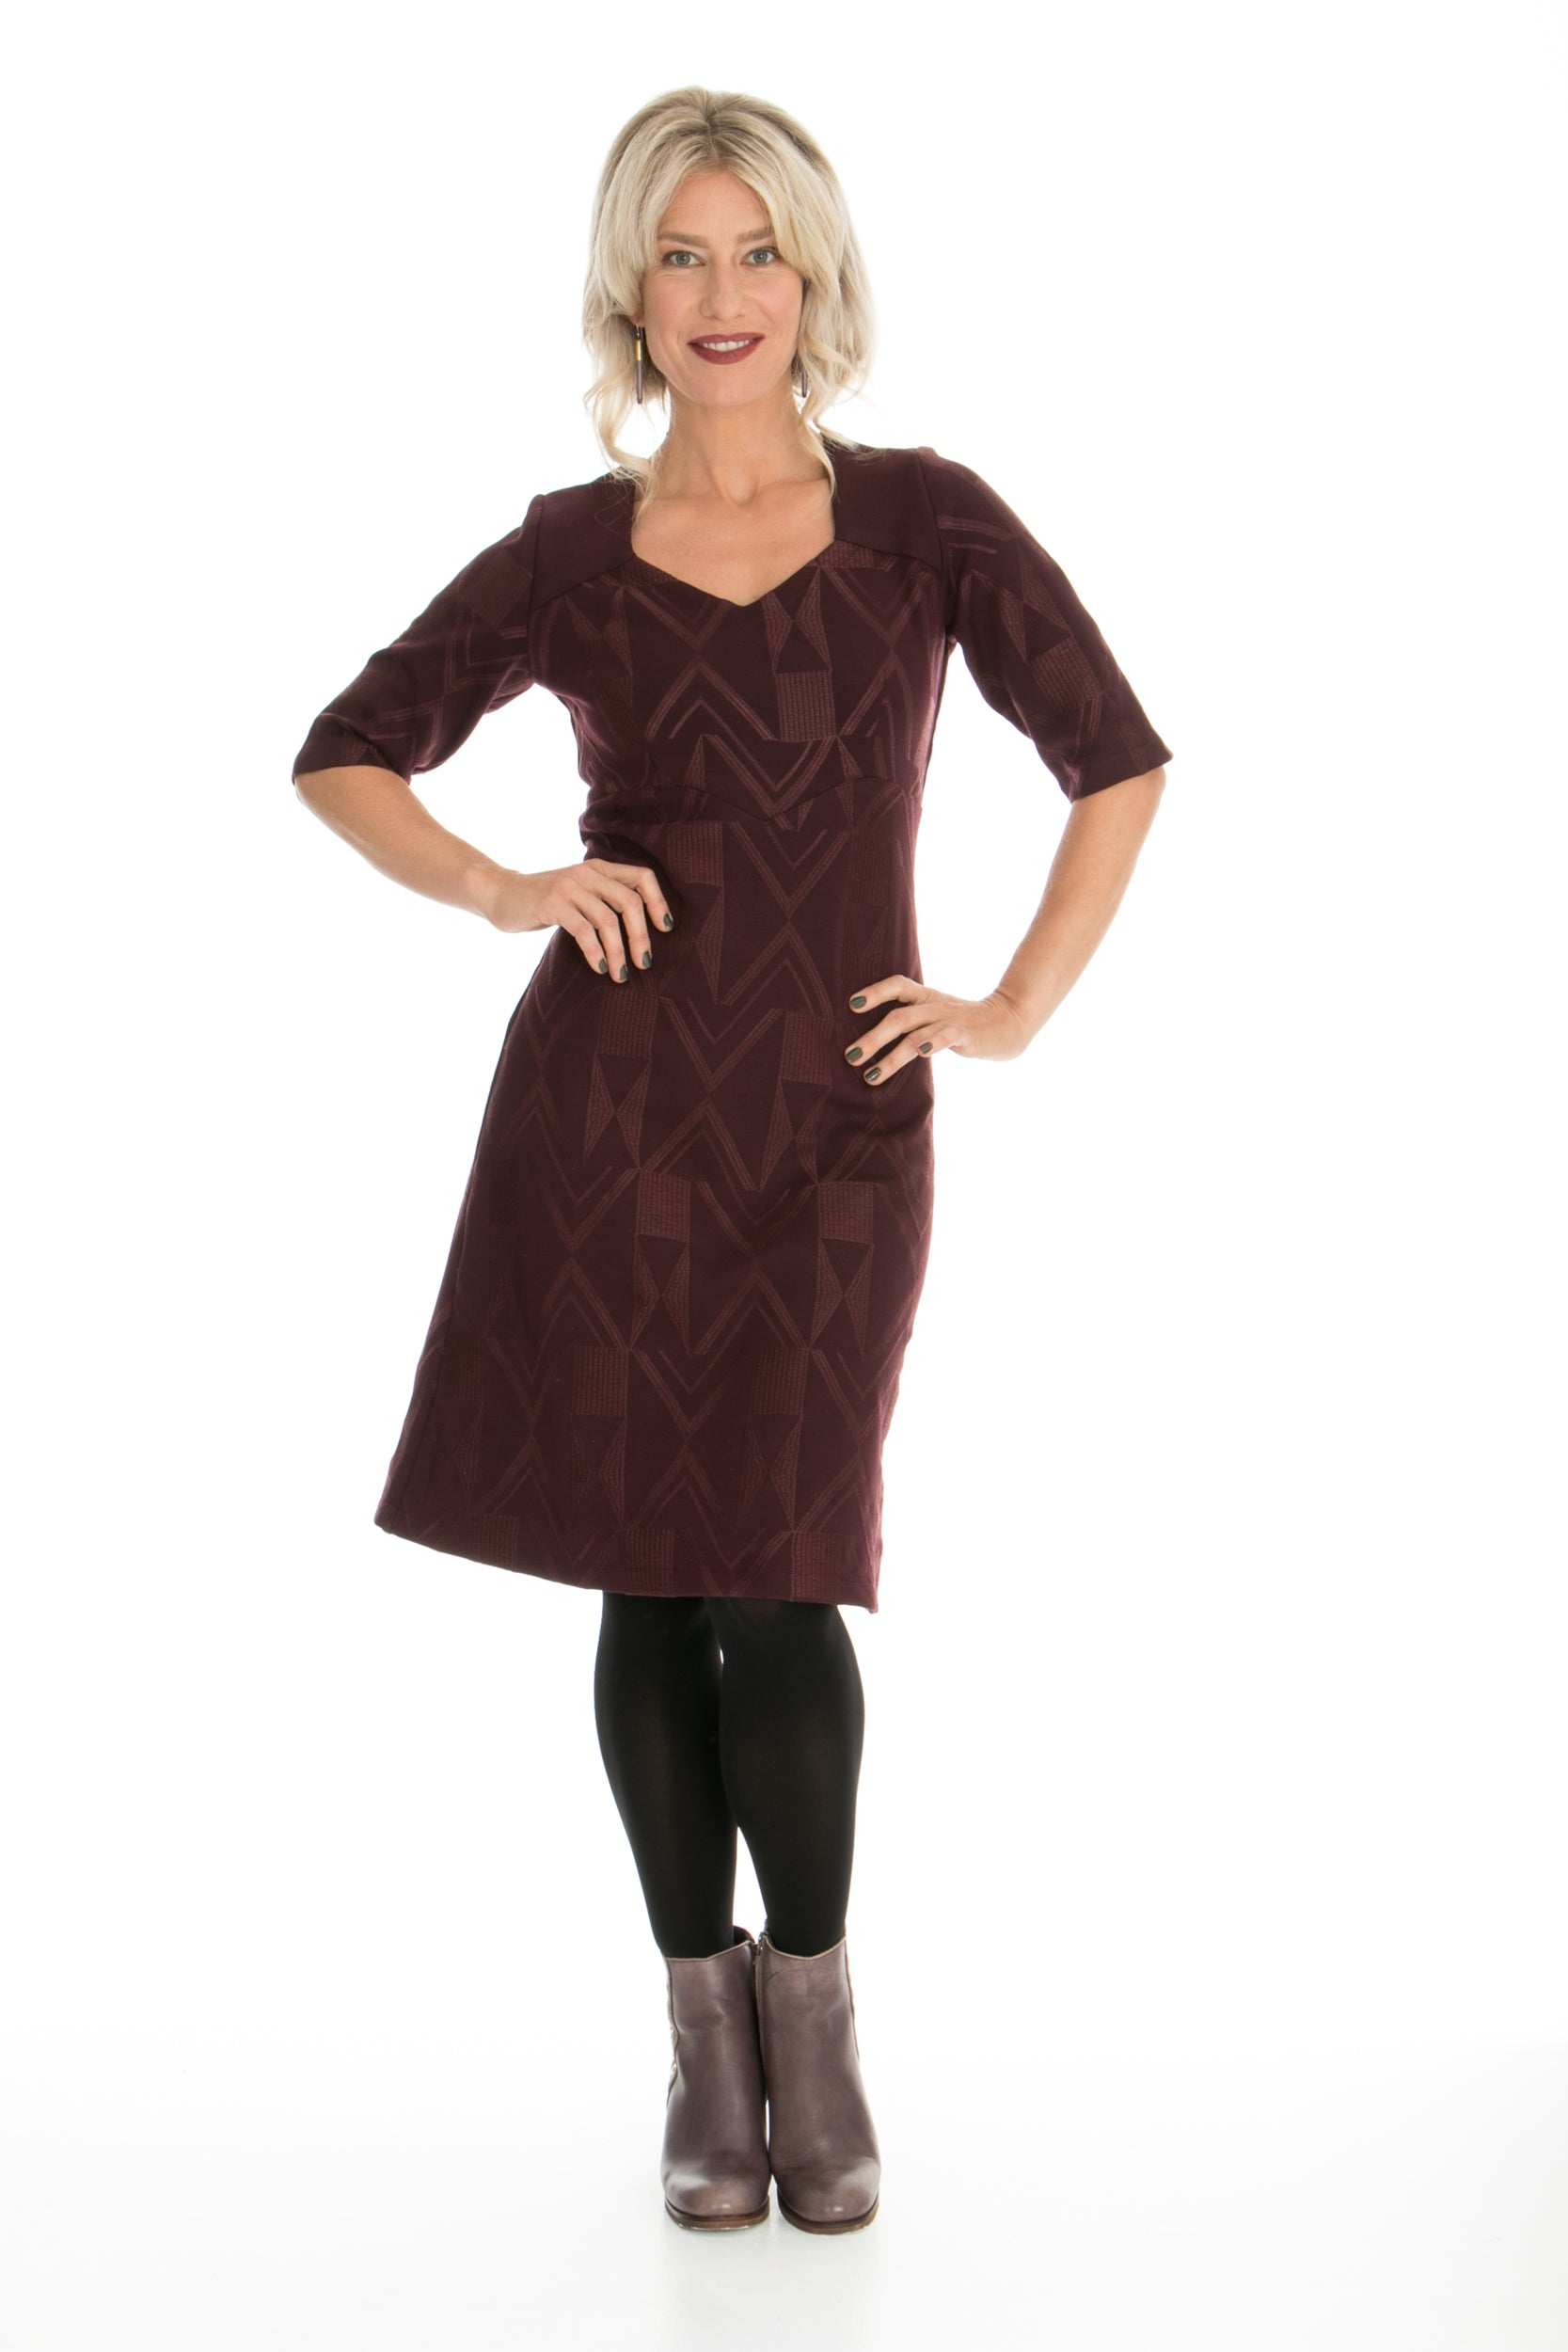 Vesta Astro Dress- Wine Stitched Ponti was $248 now $218